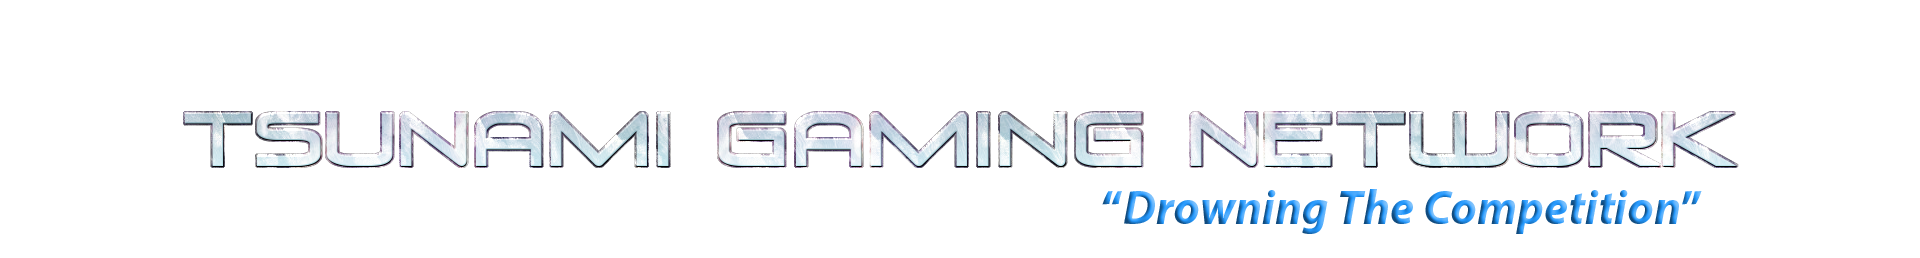 Tsunami Gaming Network